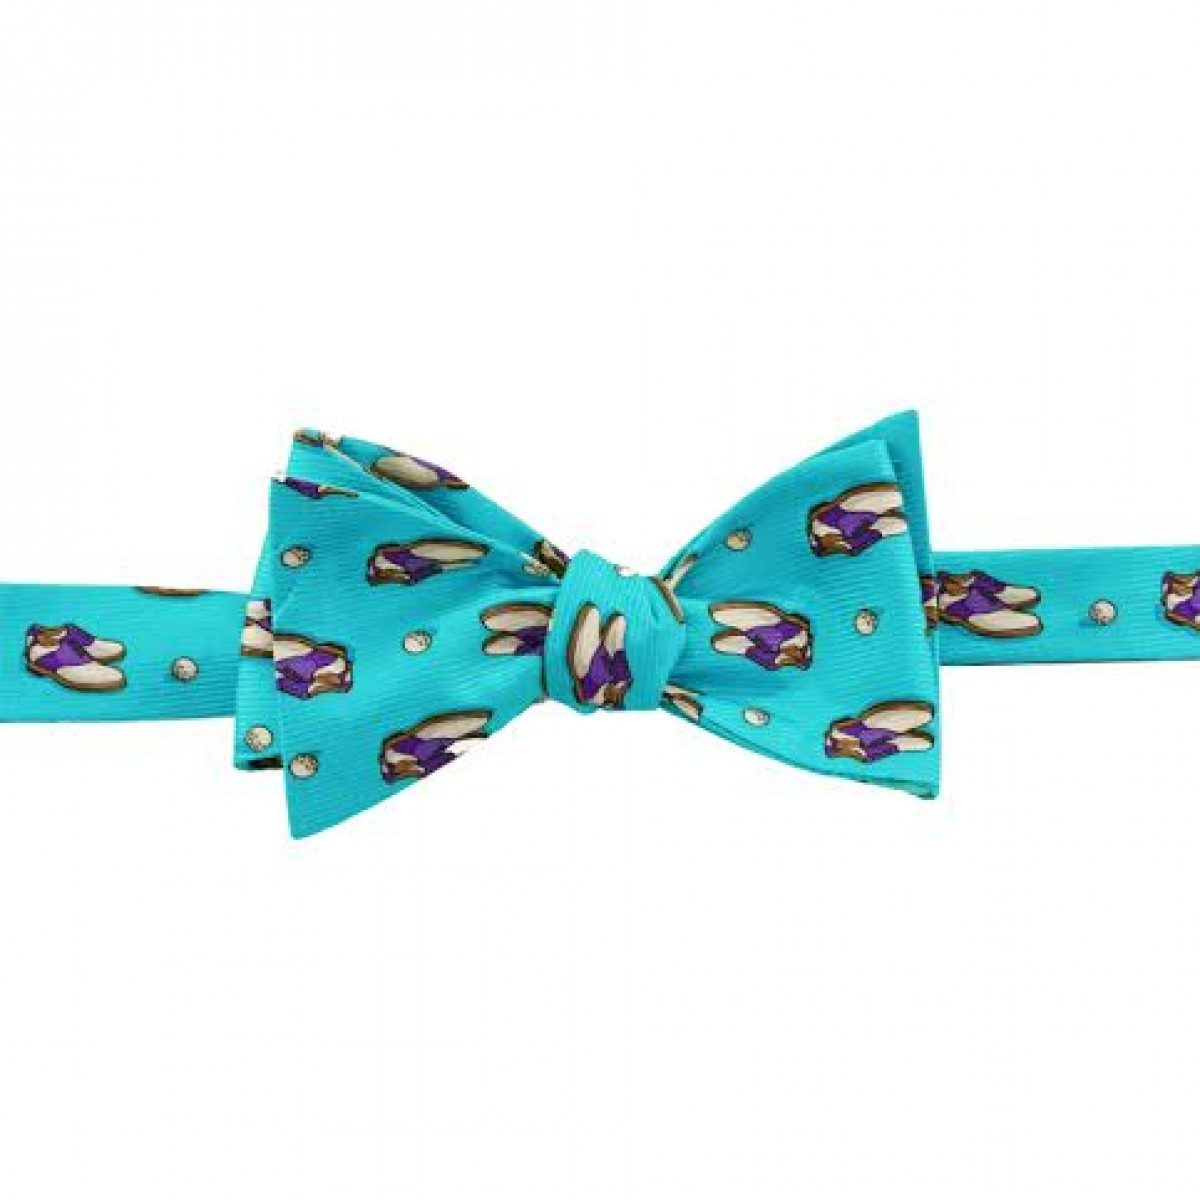 Blue Golf Shoe Bow